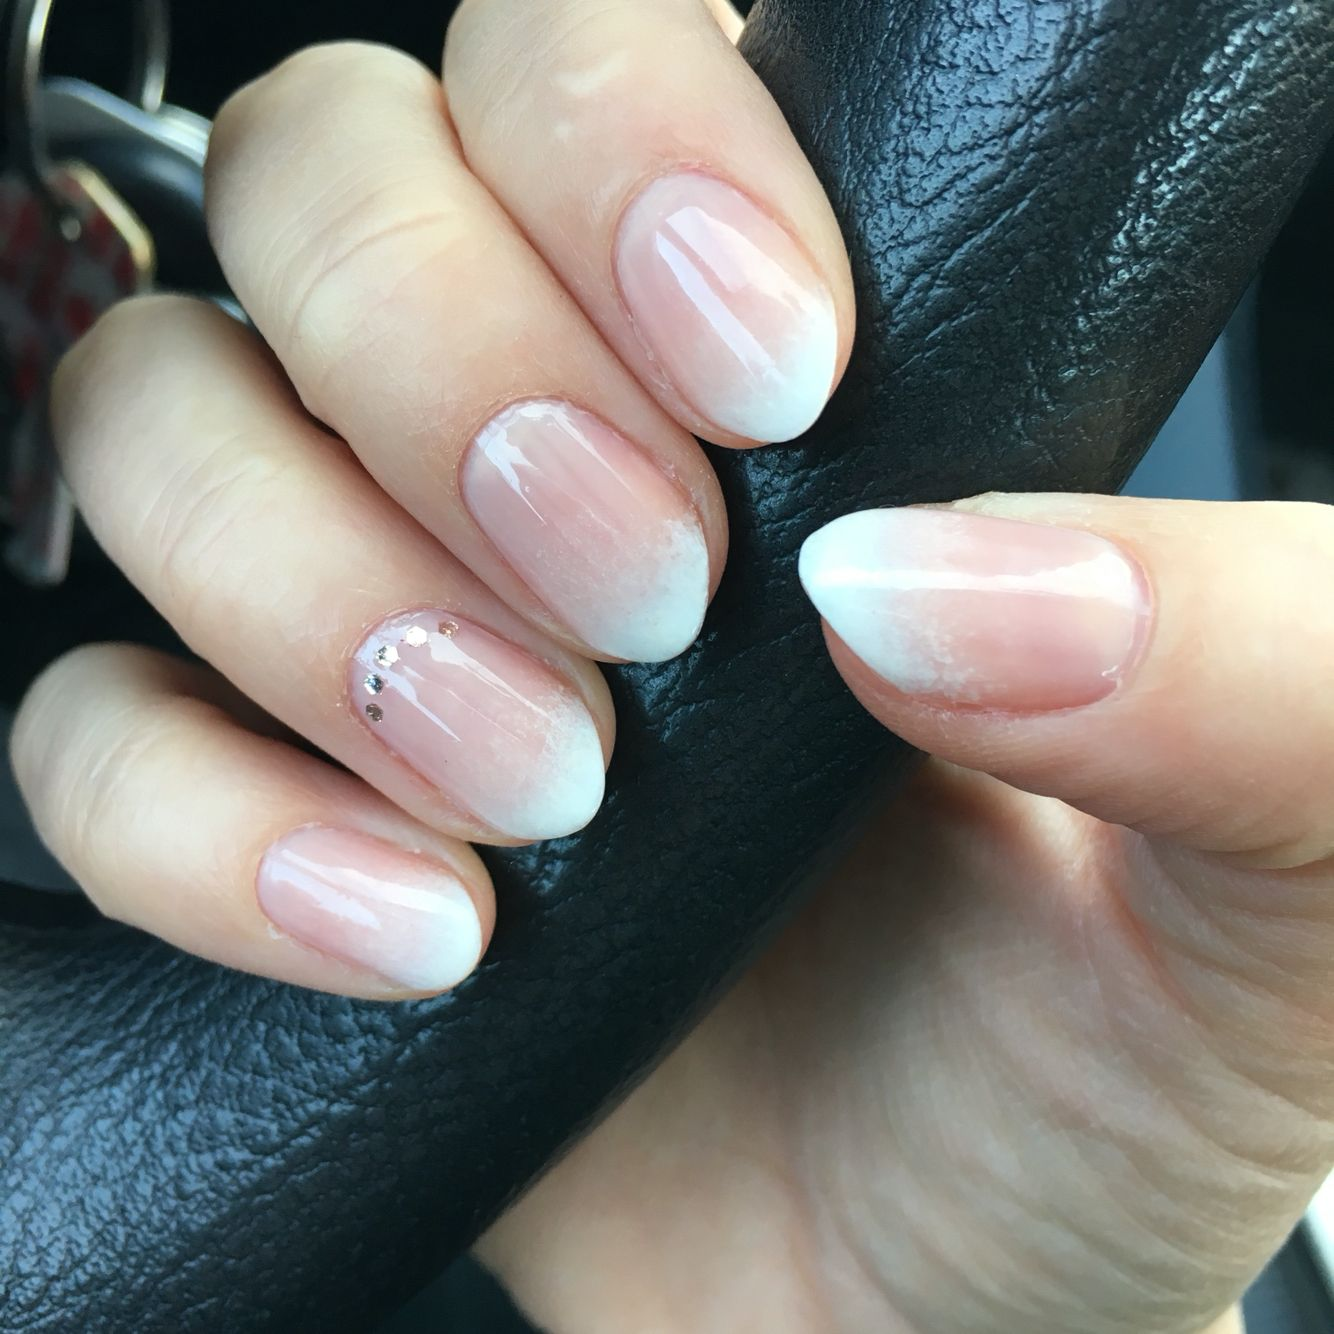 Almond shaped nails ombré French manicure | Nails ... Almond Nagels